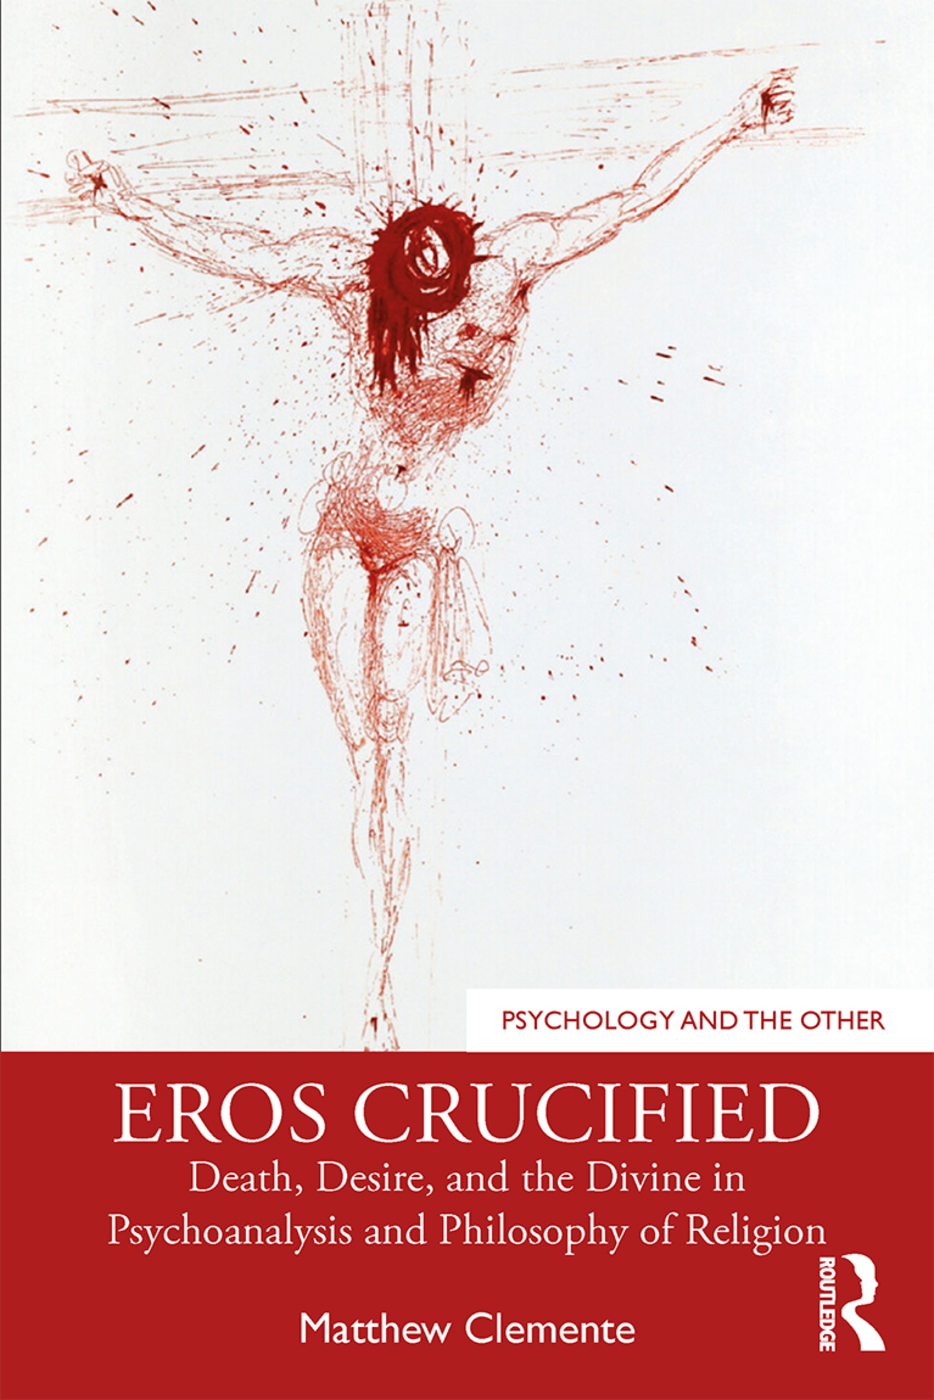 Eros Crucified: Death, Desire, and the Divine in Psychoanalysis and Philosophy of Religion Book Cover